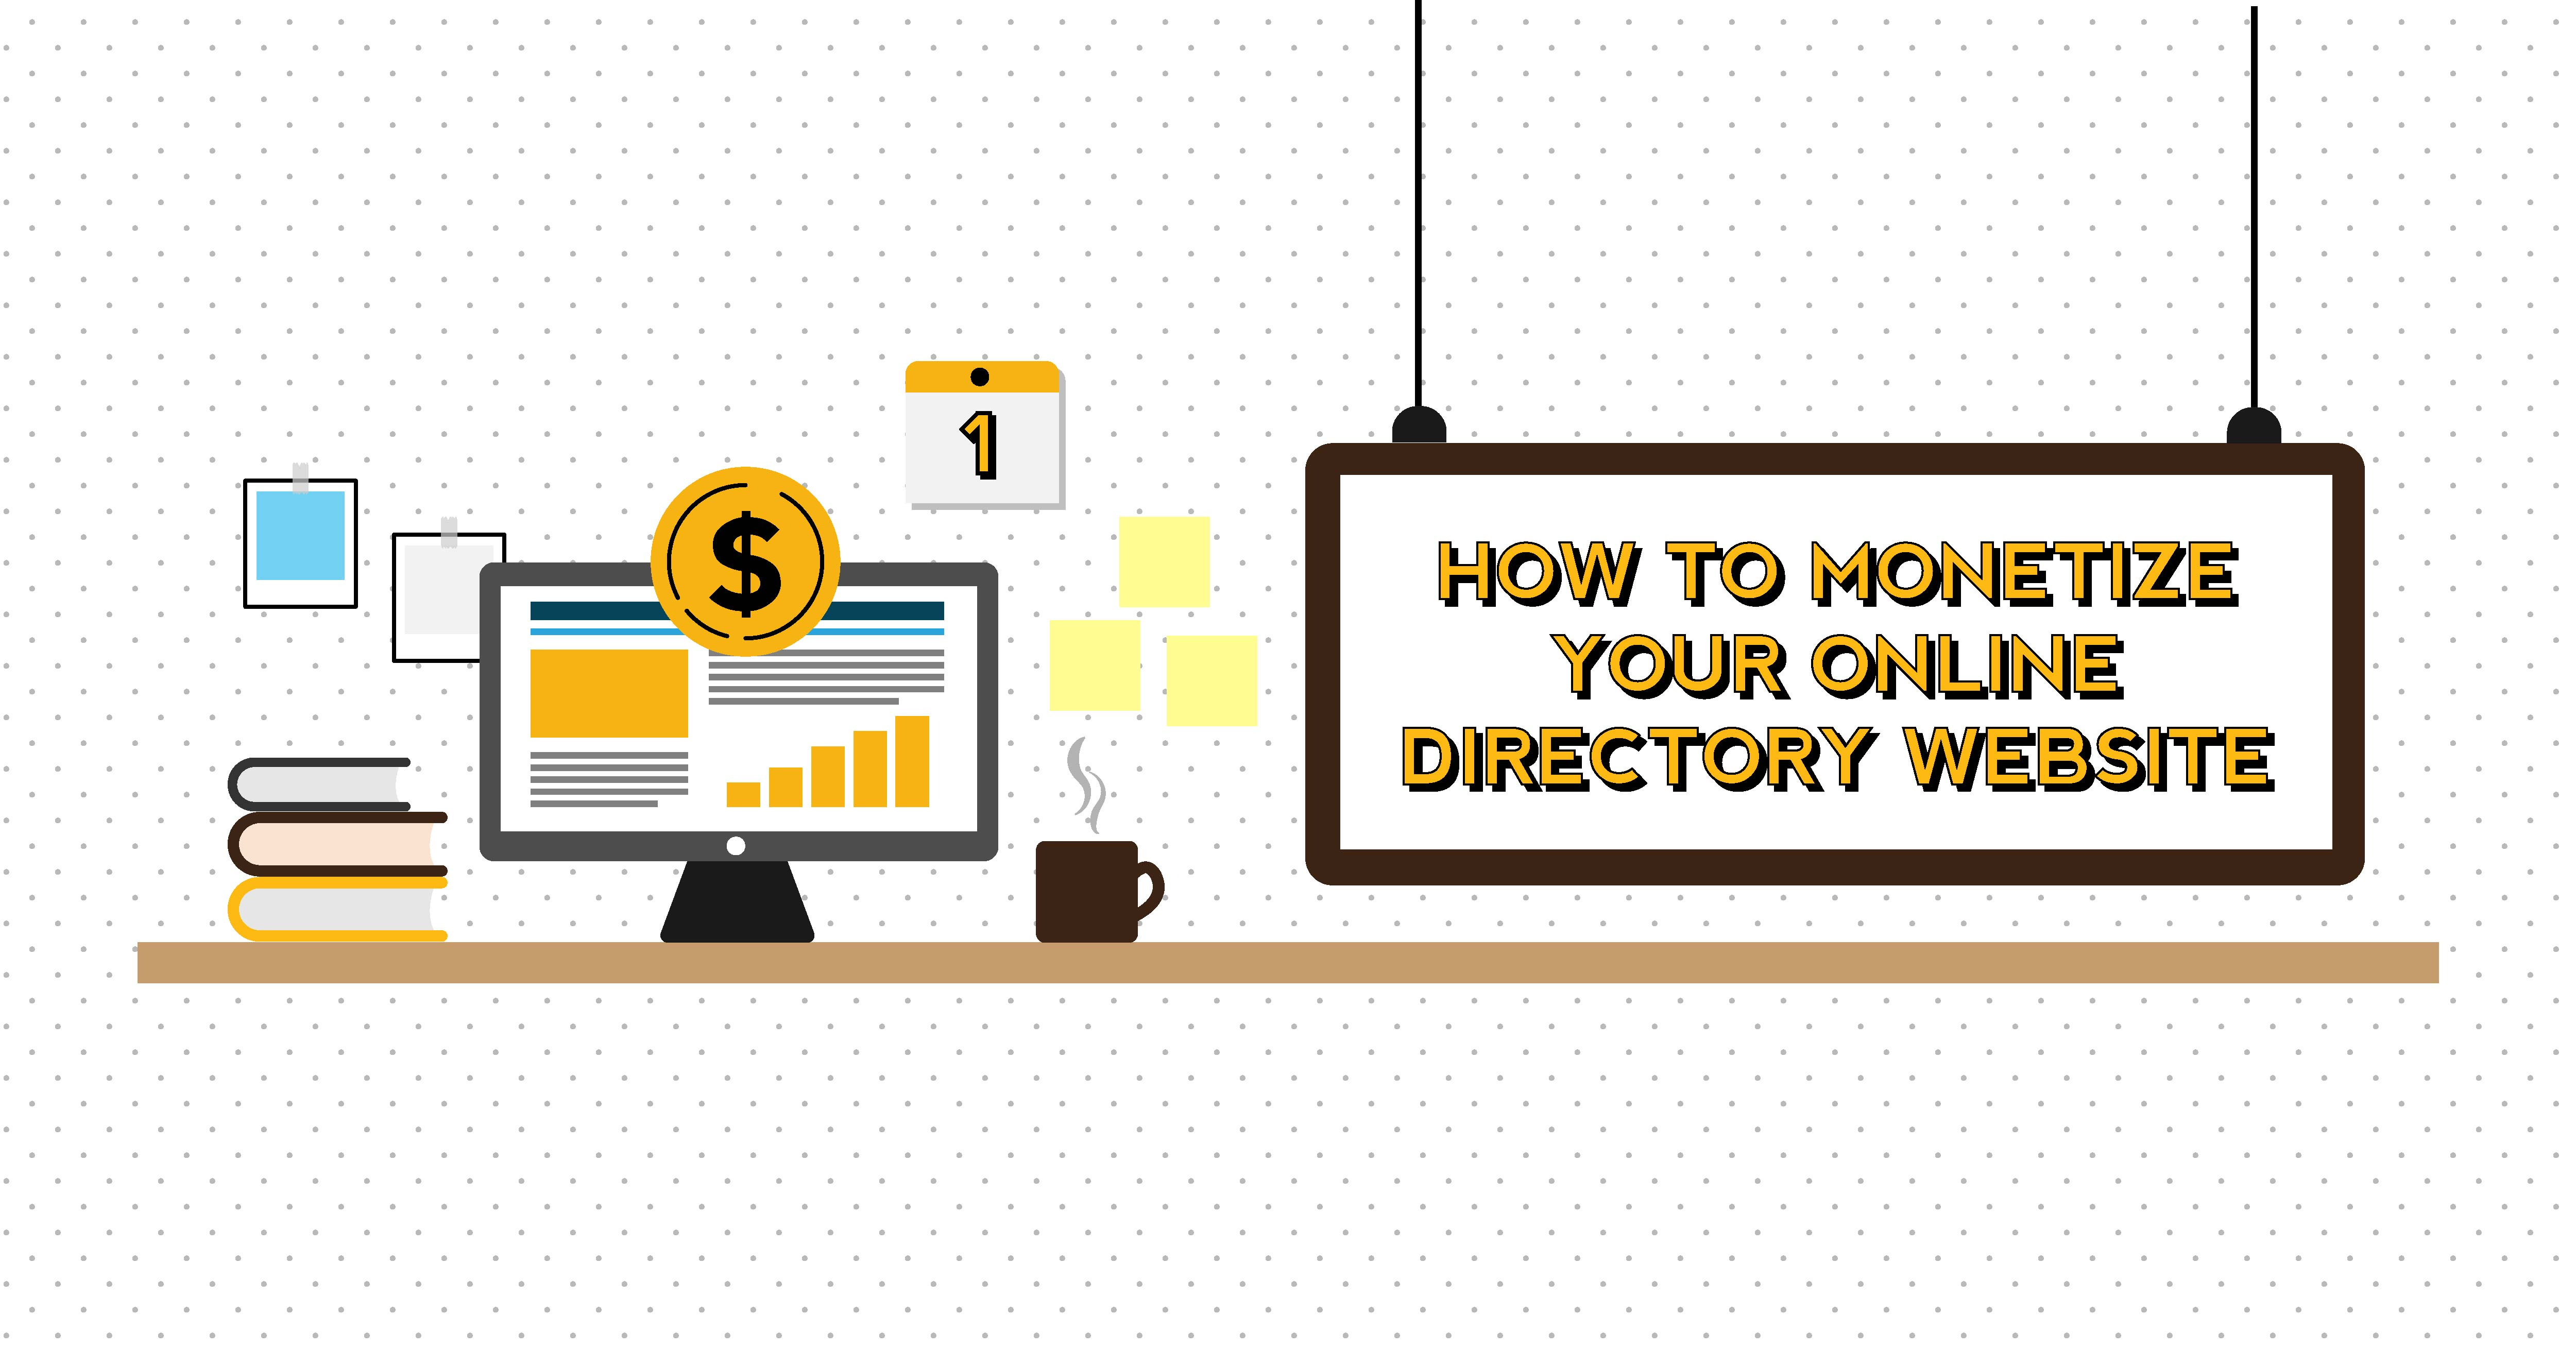 How to Monetize Your Online Directory Website